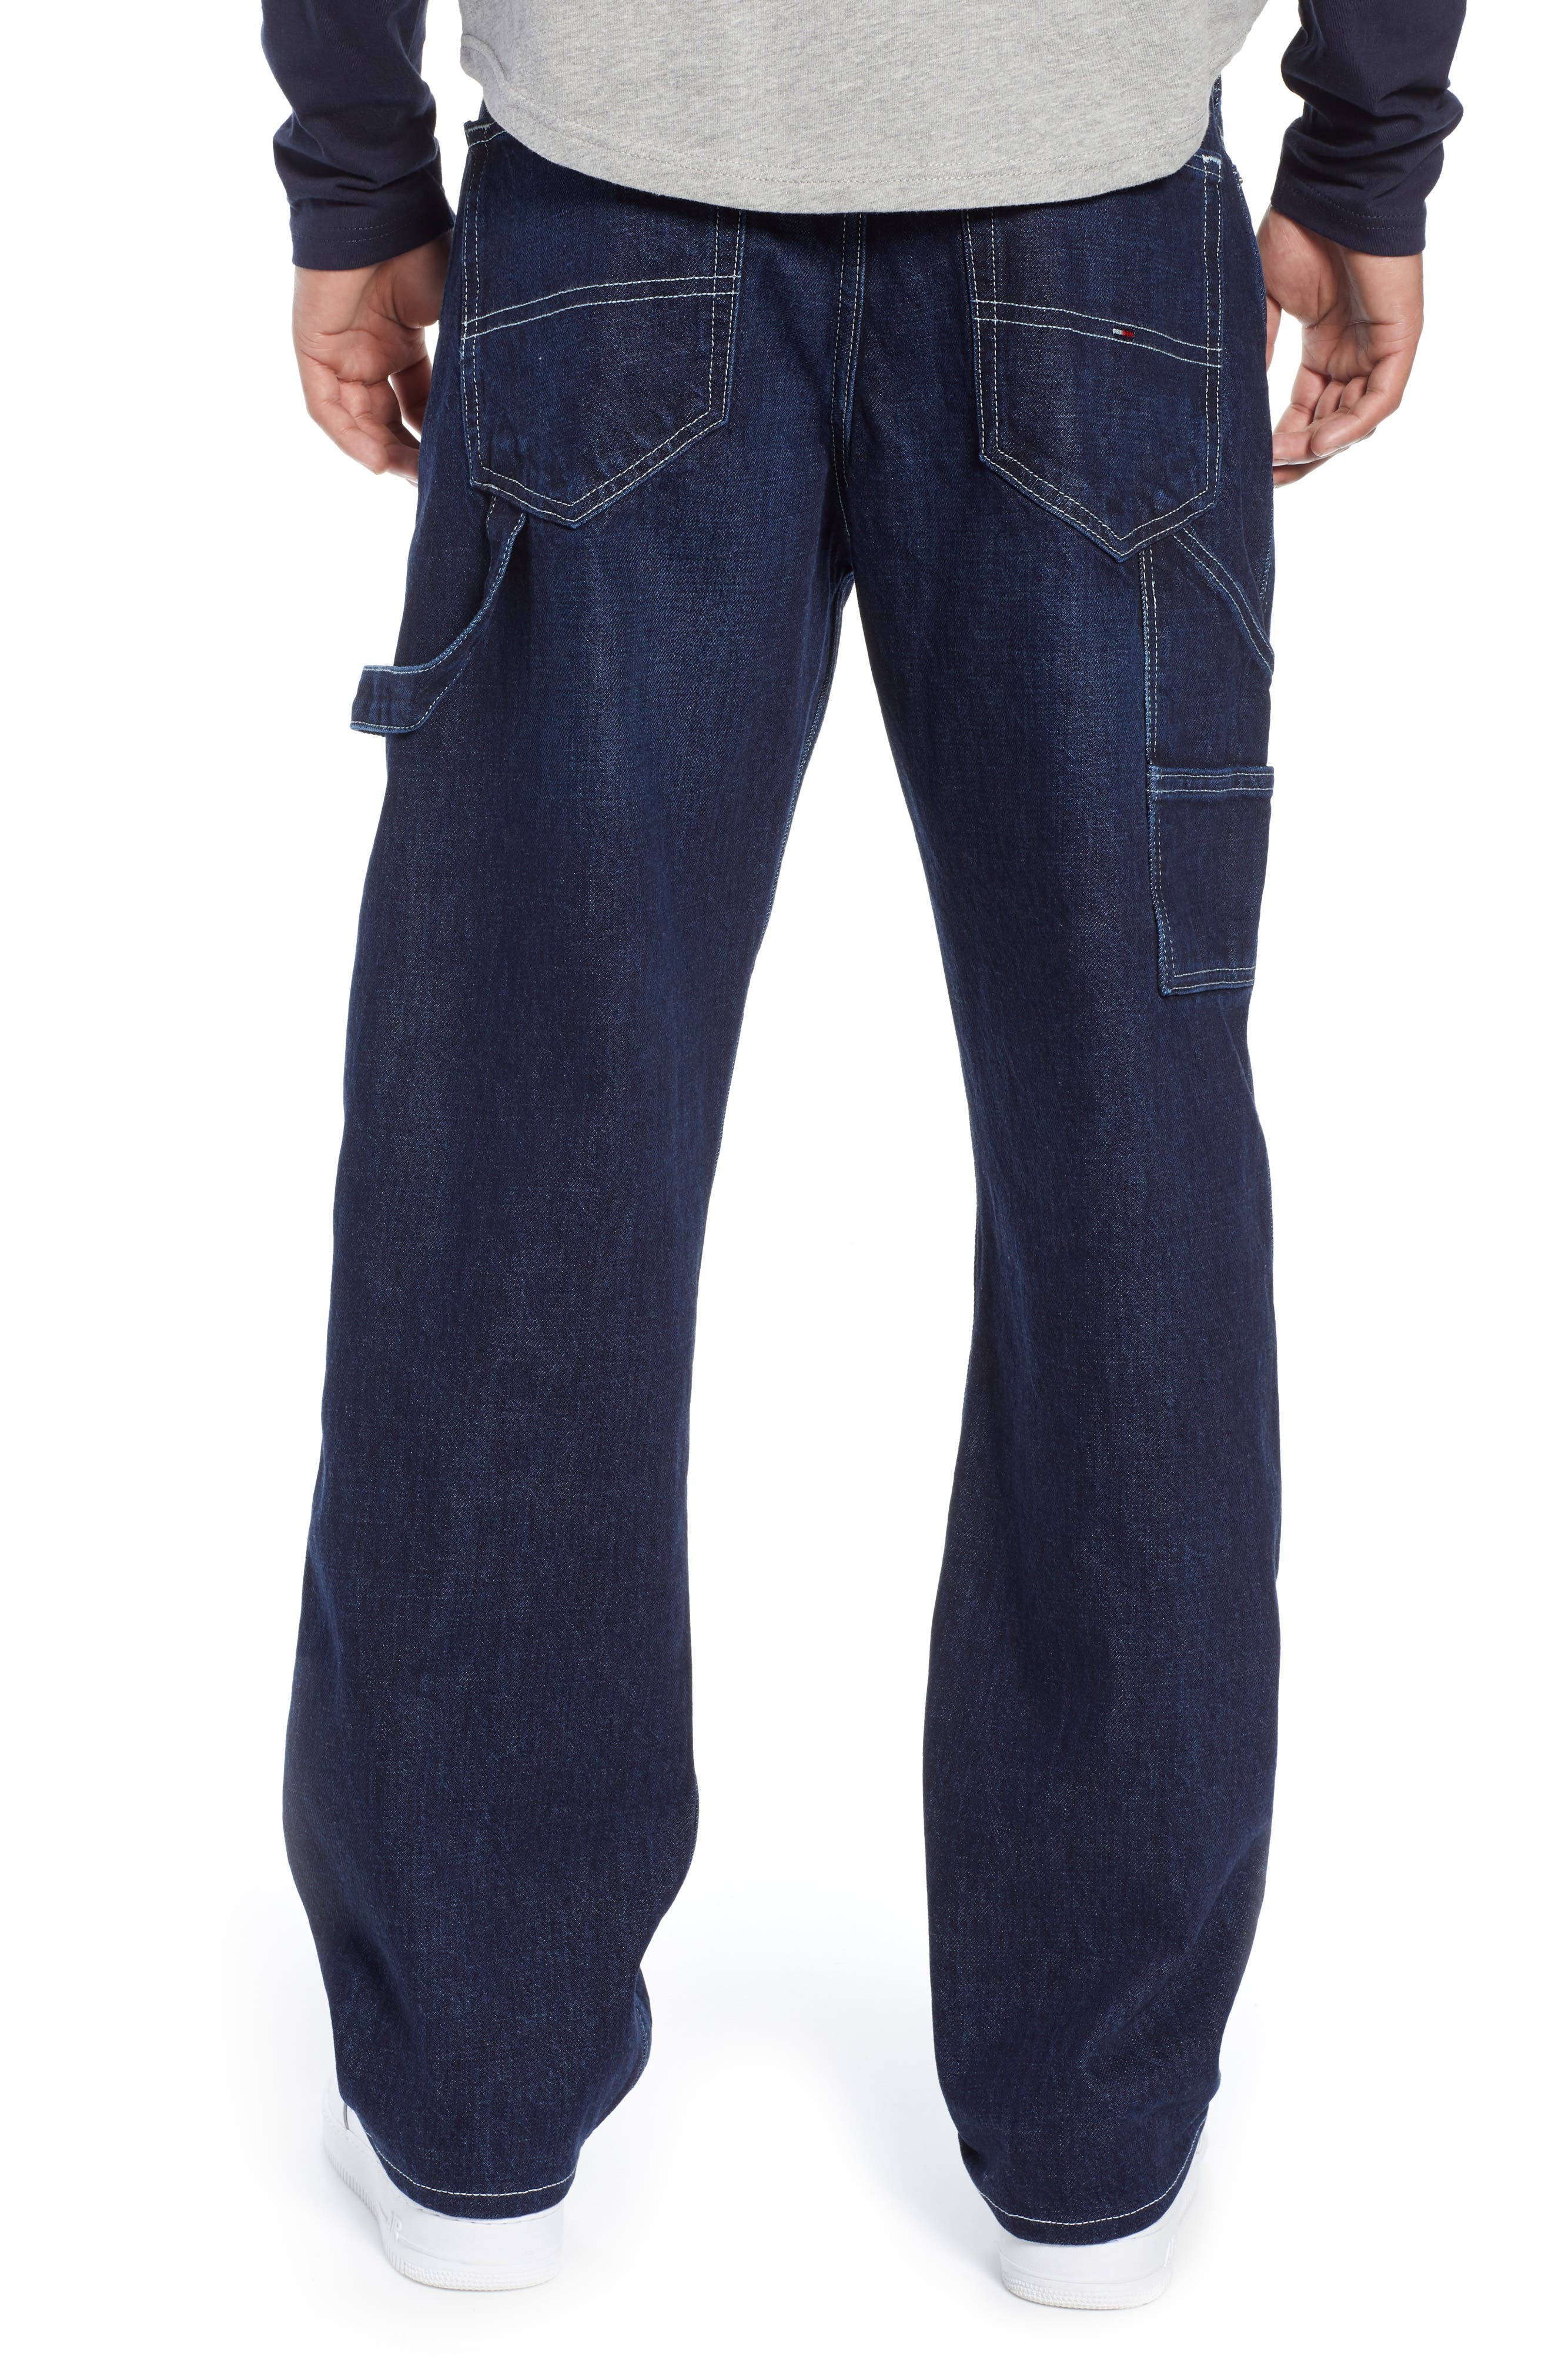 TJM 1986 Relaxed Carpenter Pants,                             Alternate thumbnail 2, color,                             CONTRAST DARK RIG